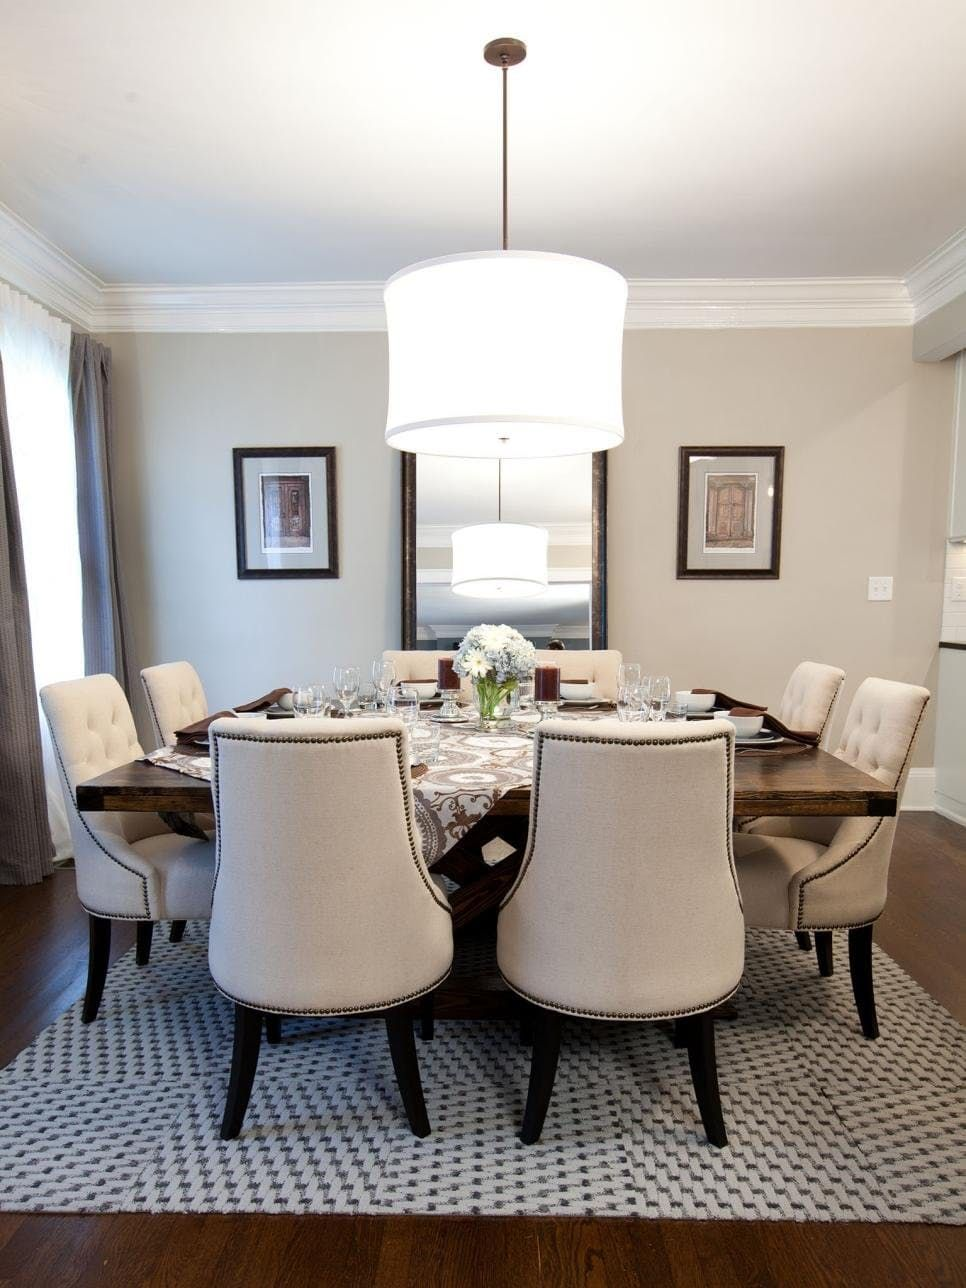 Why Carpet Tiles Are The Right Rug For The Dining Room Square Dining Tables Rug Under Dining Table Dining Room Contemporary